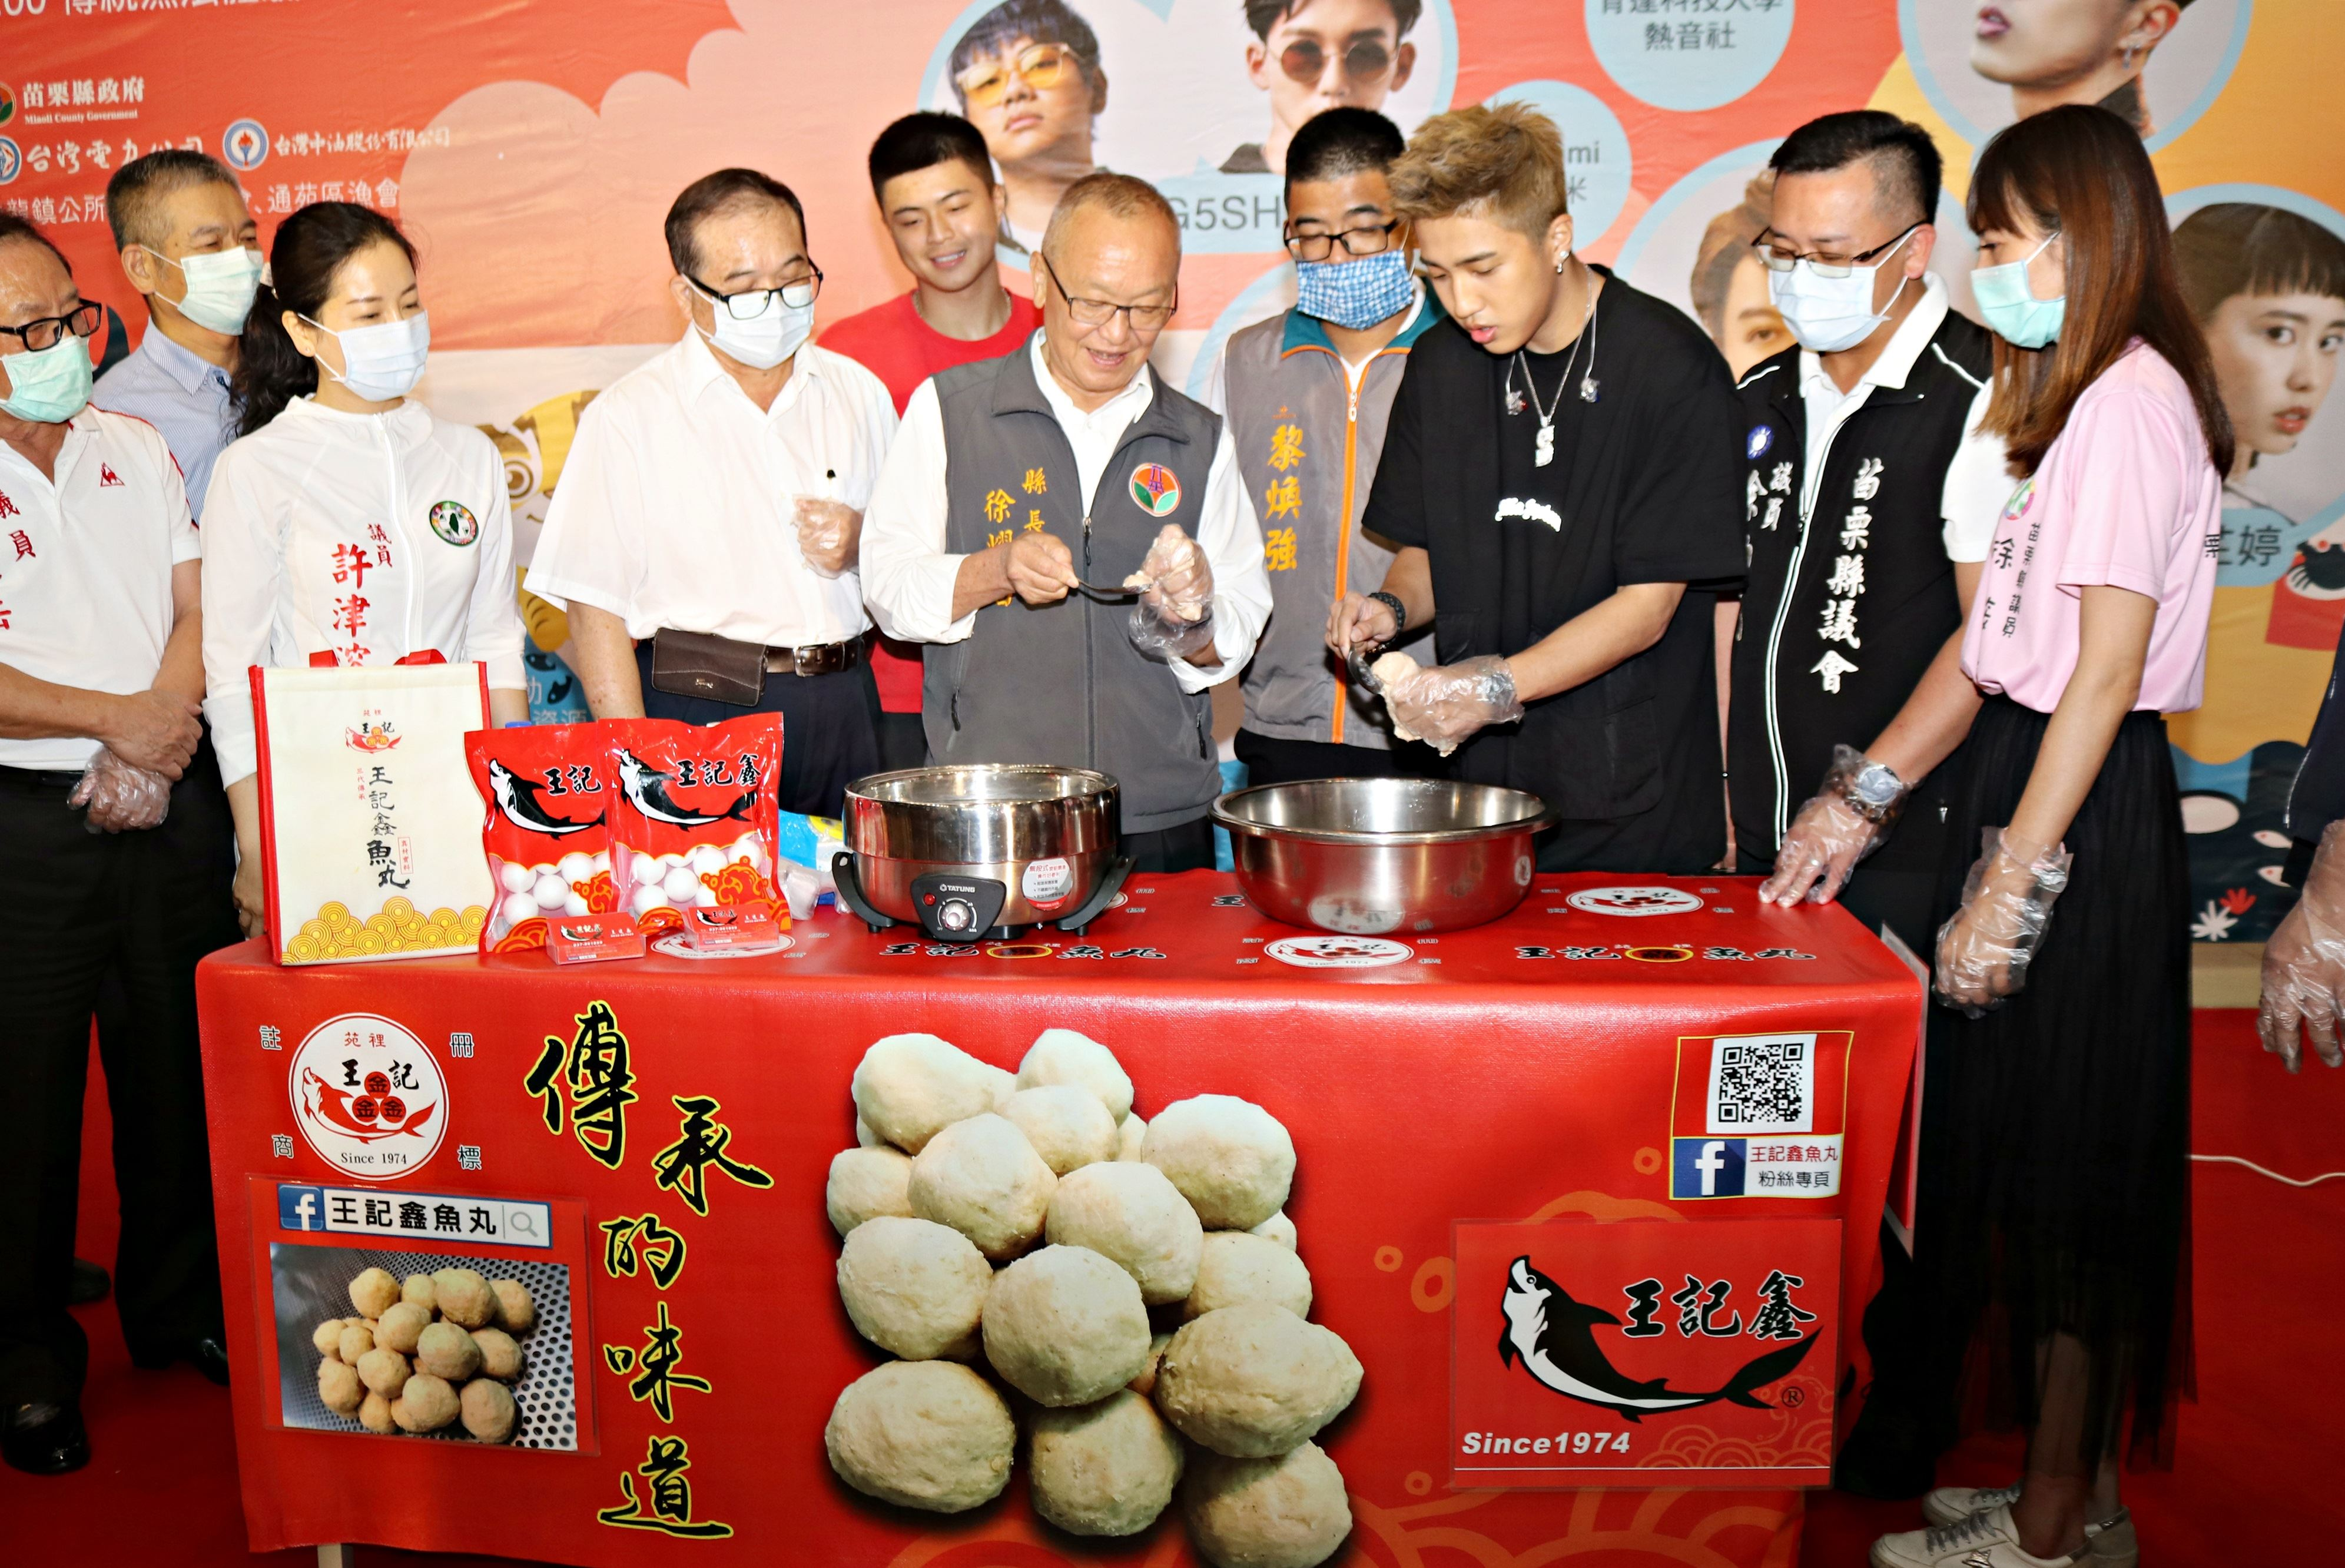 The annual Miaoli Ocean Festival was just inaugurated for the 14th time